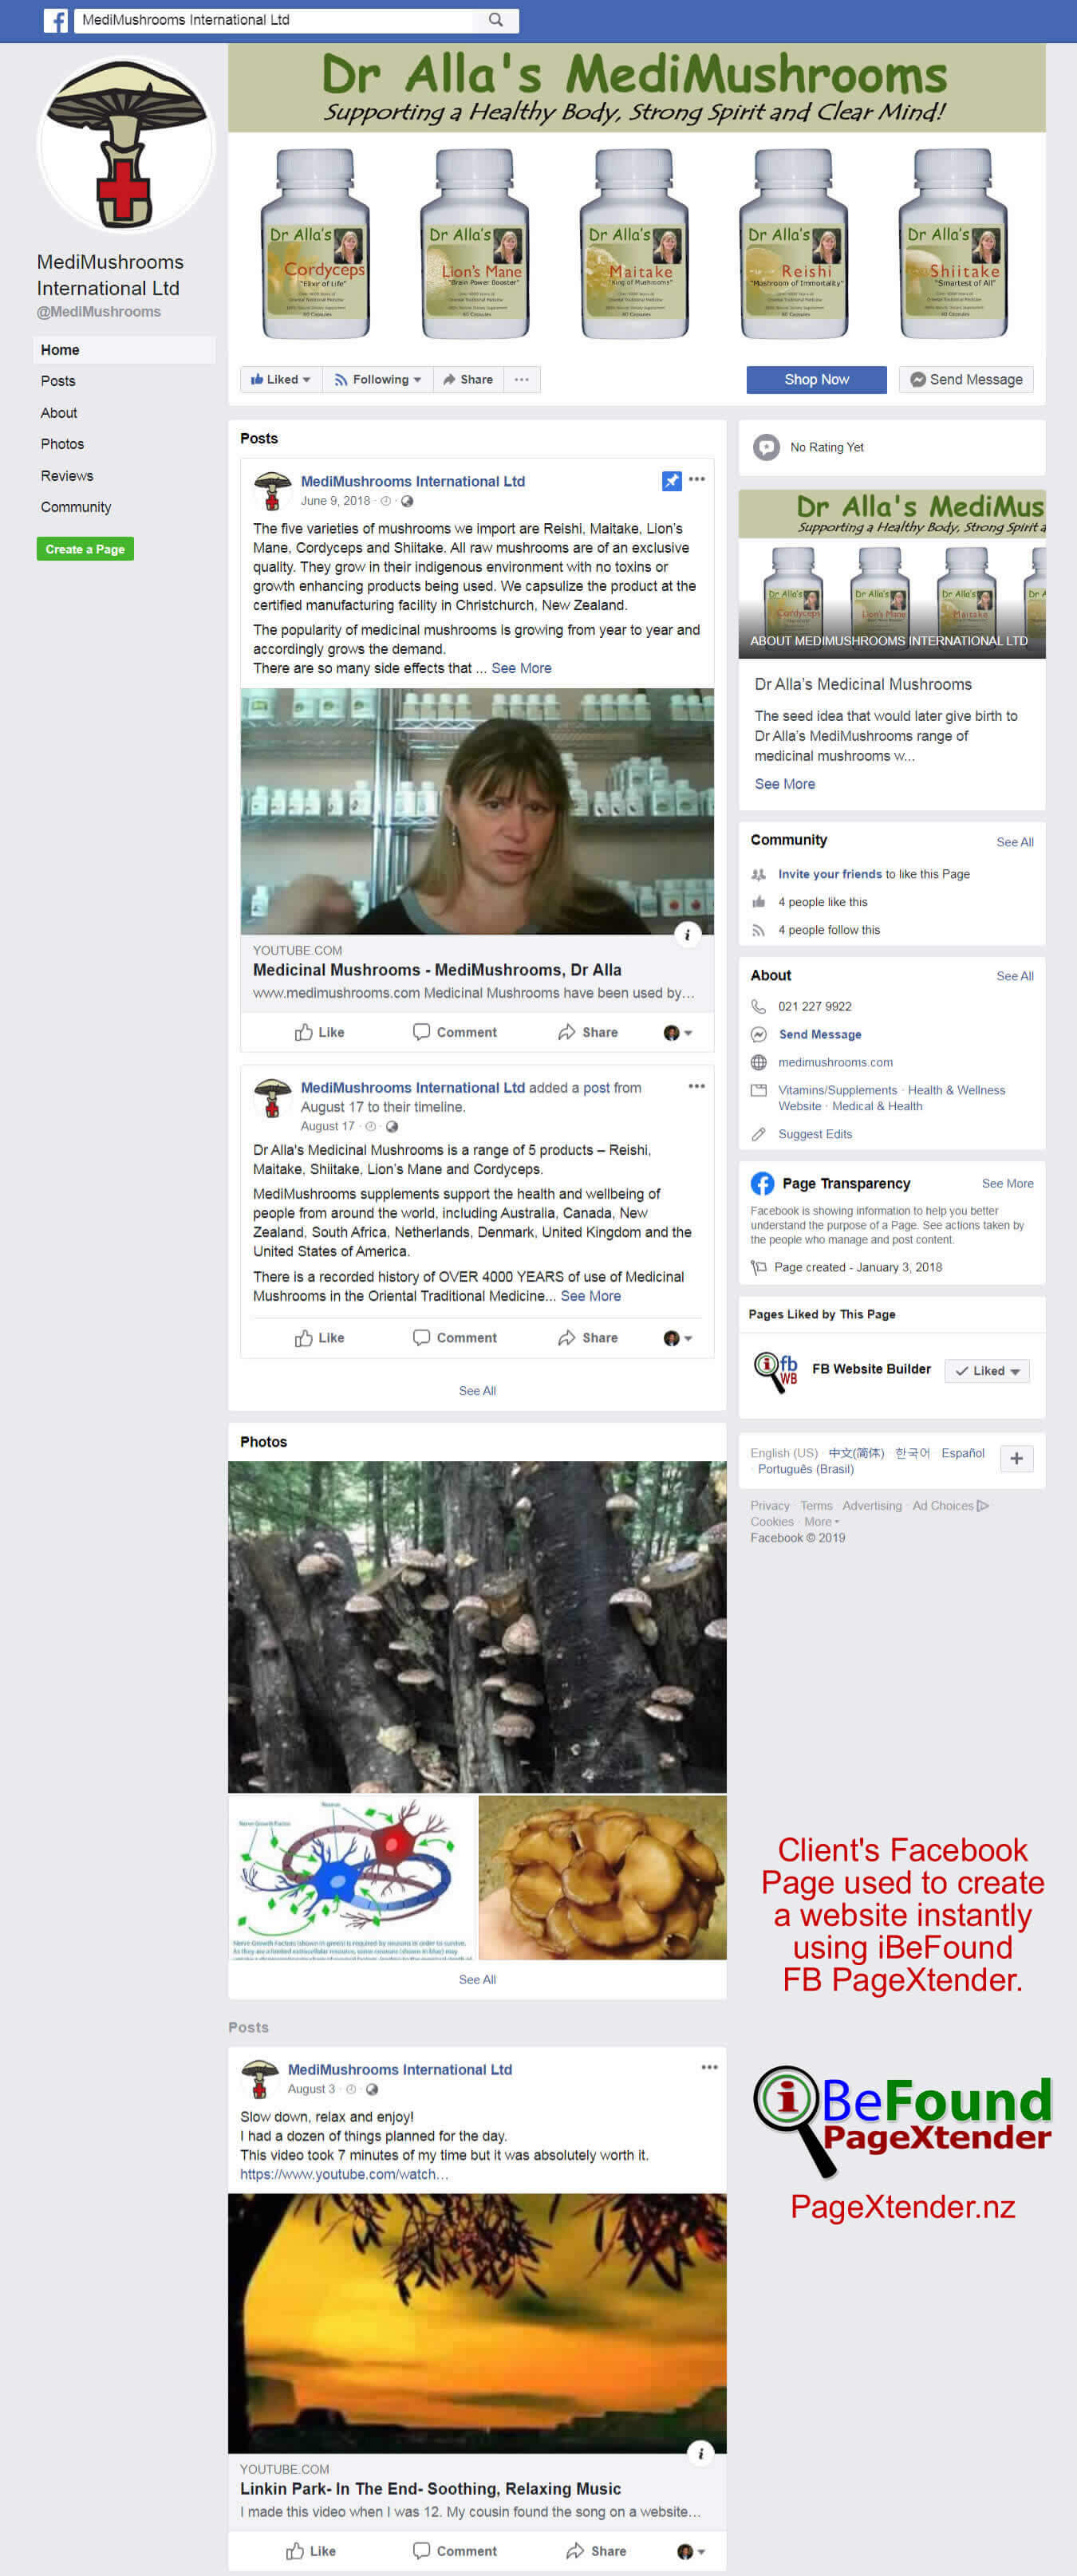 FB Page Of Dr Allas MediMushrooms Used For Instant Site Creation By IBeFound FB Website Builder NZ